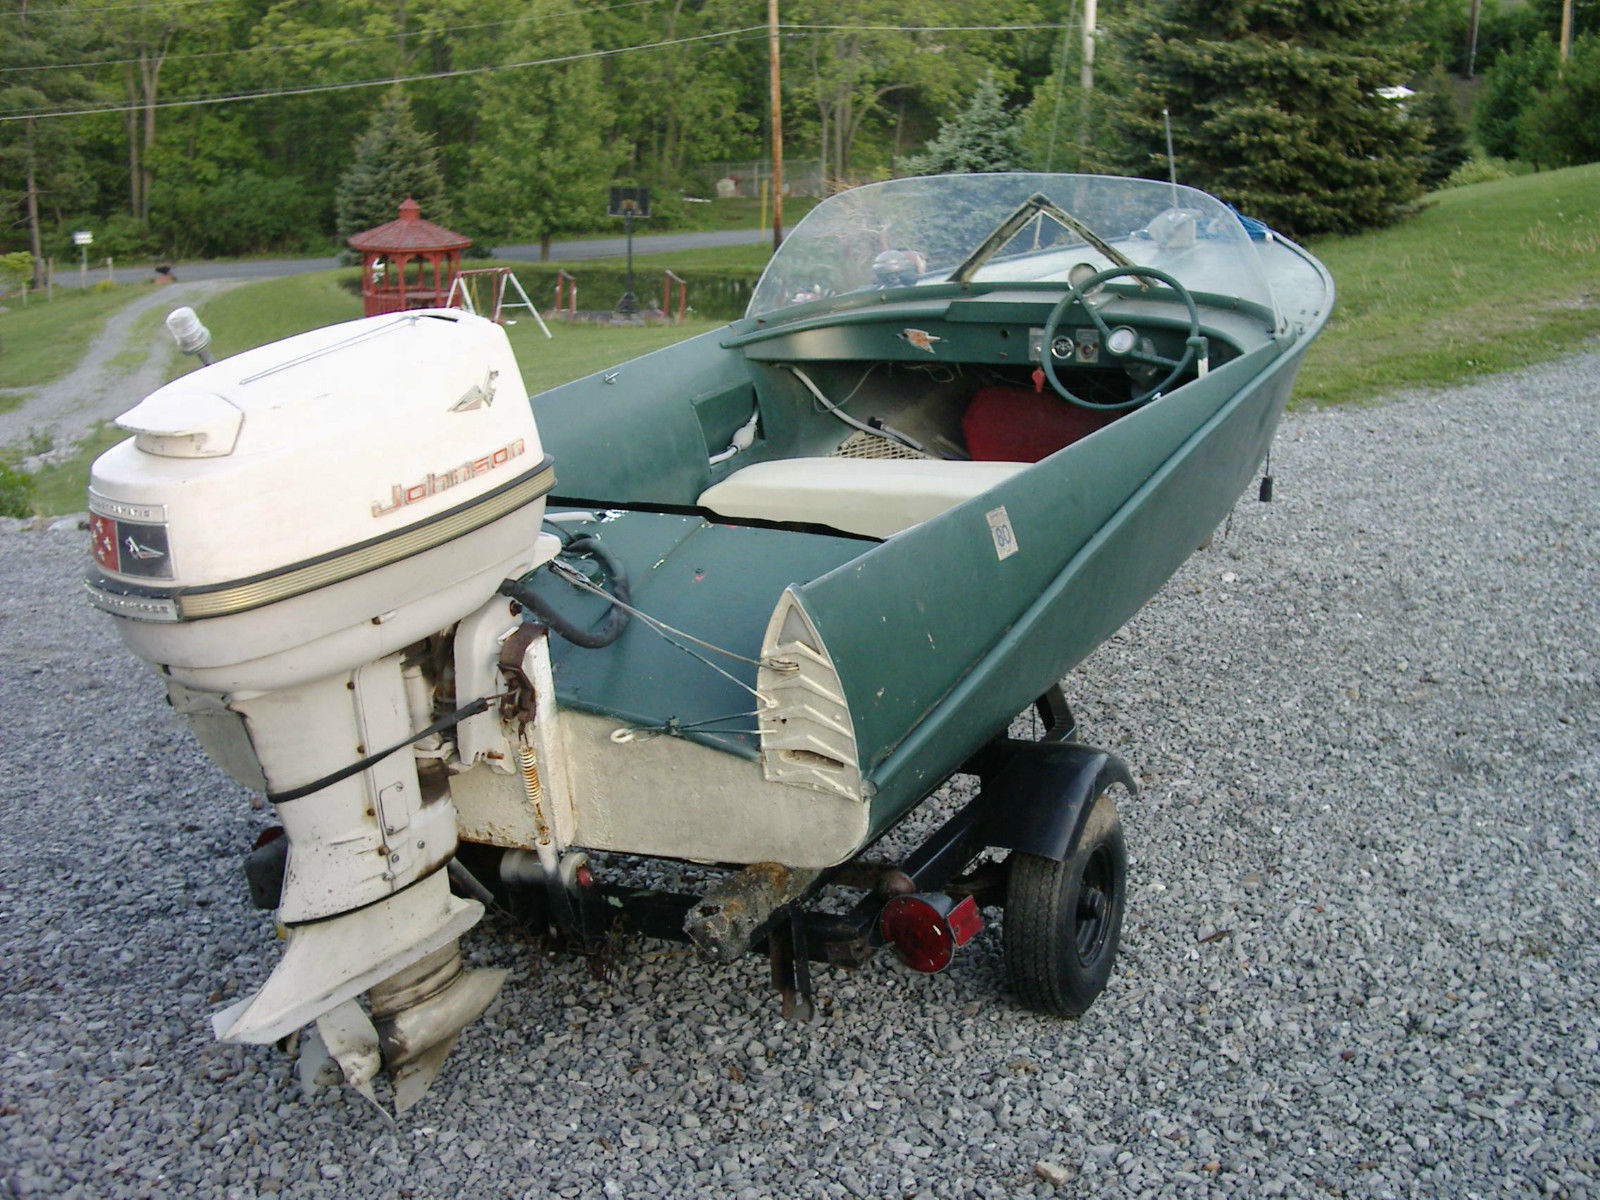 Crestliner Jetstreak Runabout Aluminum Feathercraft Johnson Outboard Antique 1959